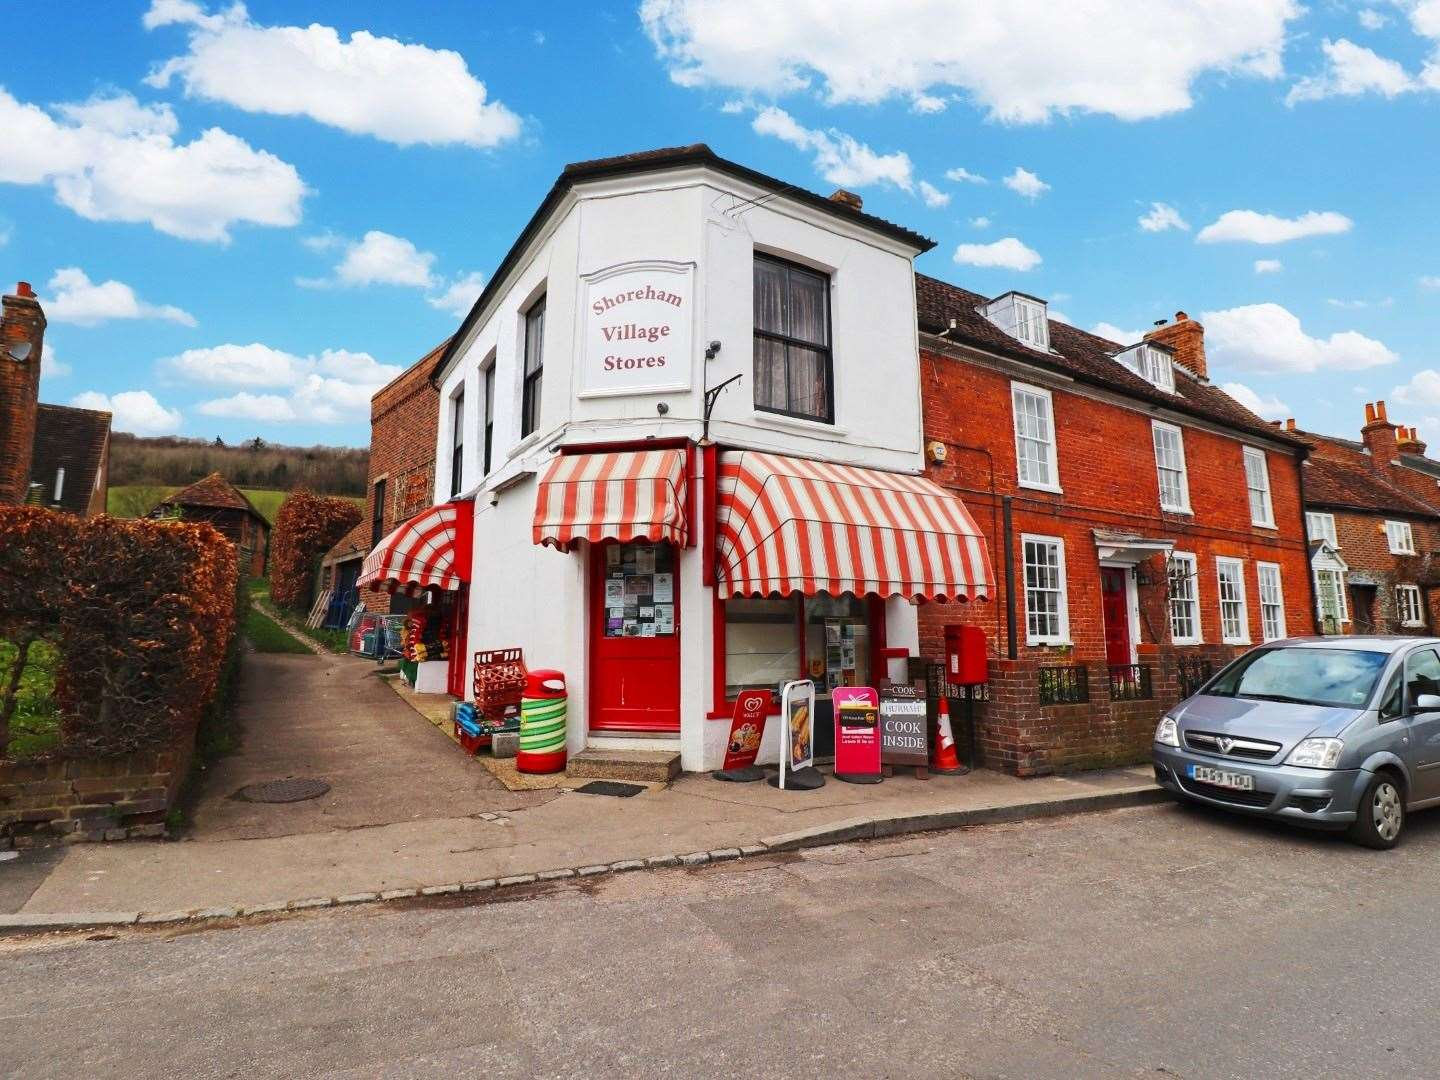 Shoreham Village Stores is on the market (8657441)